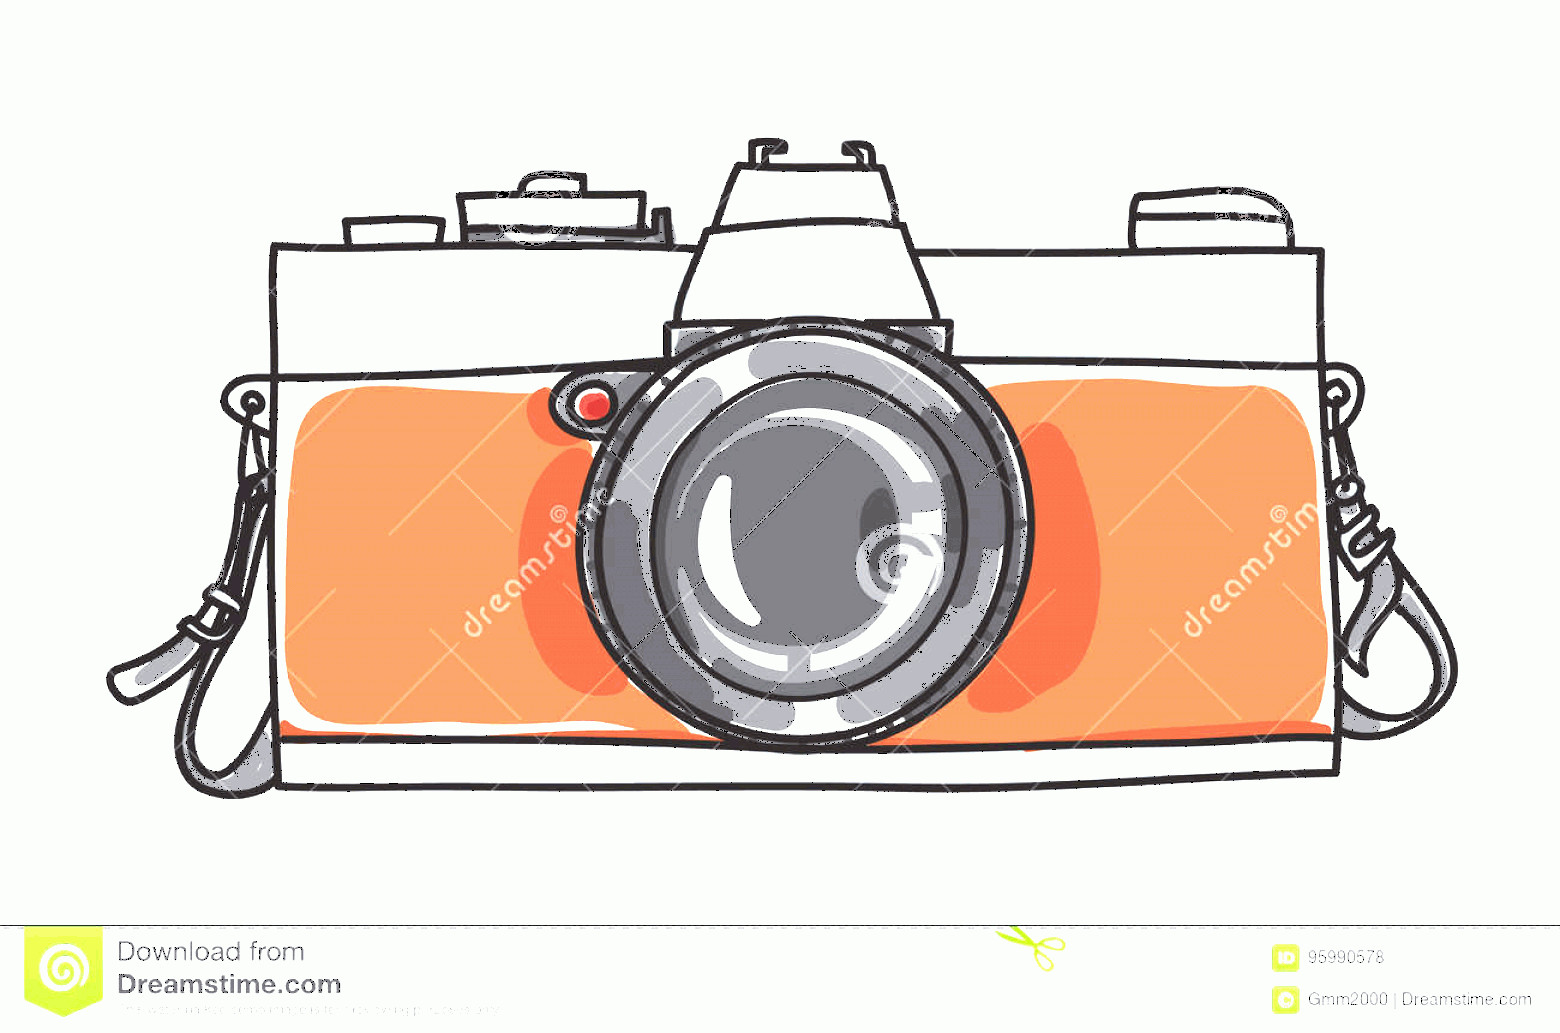 Classic Camera Vector: Stock Illustration Classic Vintage Camera Hand Drawn Art Vector Illustration Image